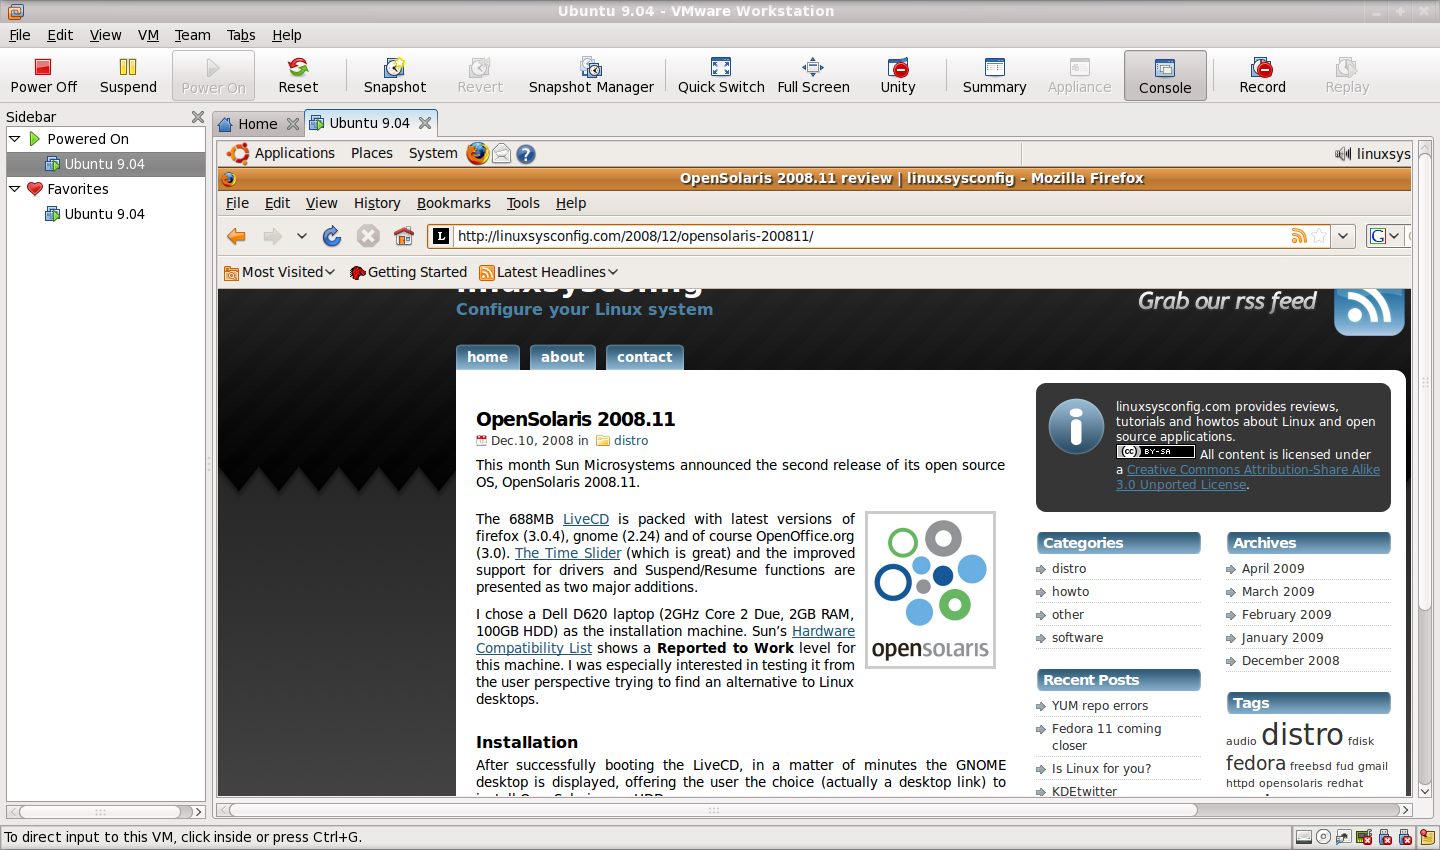 Ubuntu 9.04 running in VMware Wokstation 6.5.2 on Fedora 11